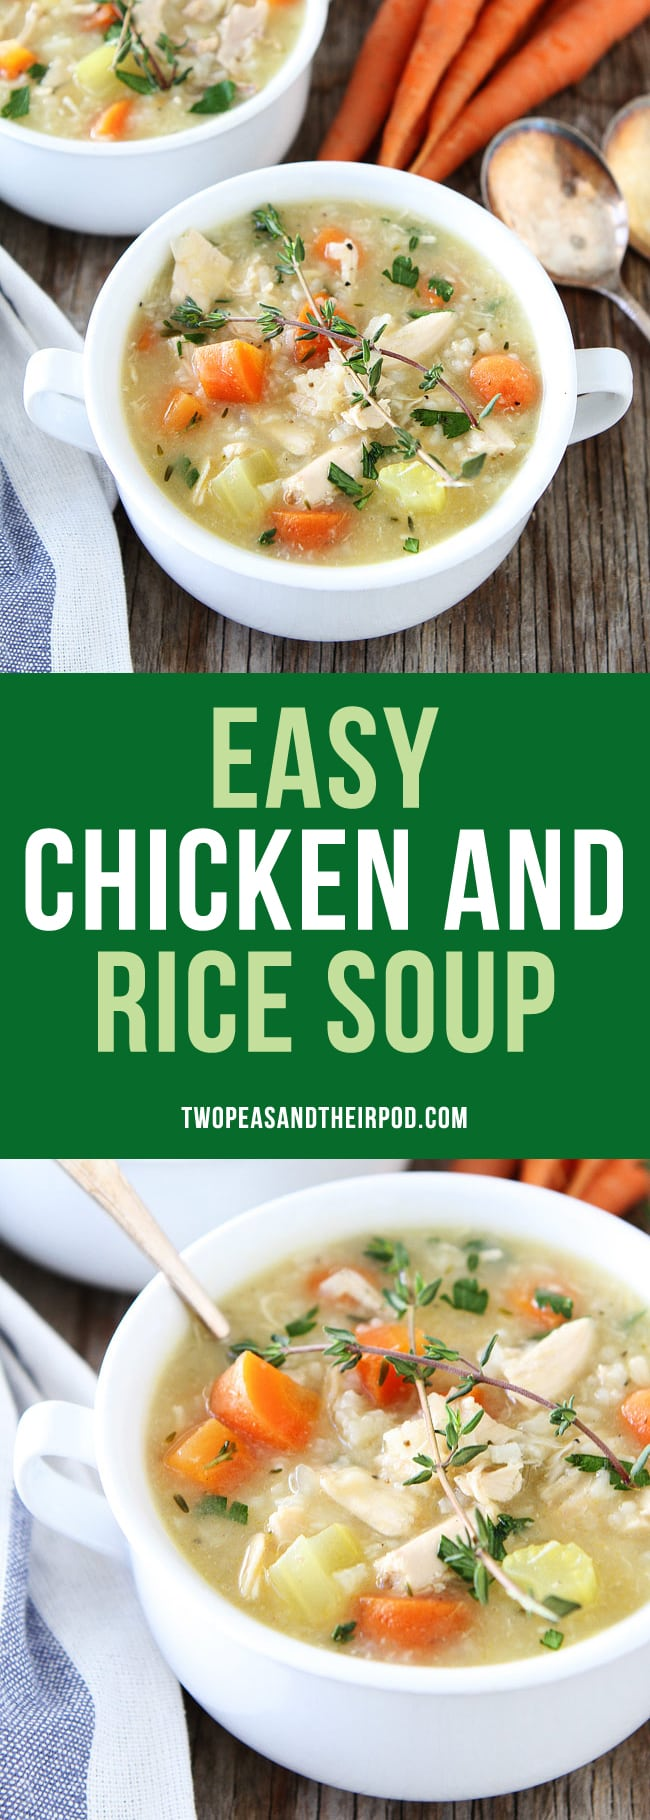 Easy chicken and rice soup recipe two peas their pod easy chicken and rice soup is a great quick and easy dinner recipe a great forumfinder Gallery